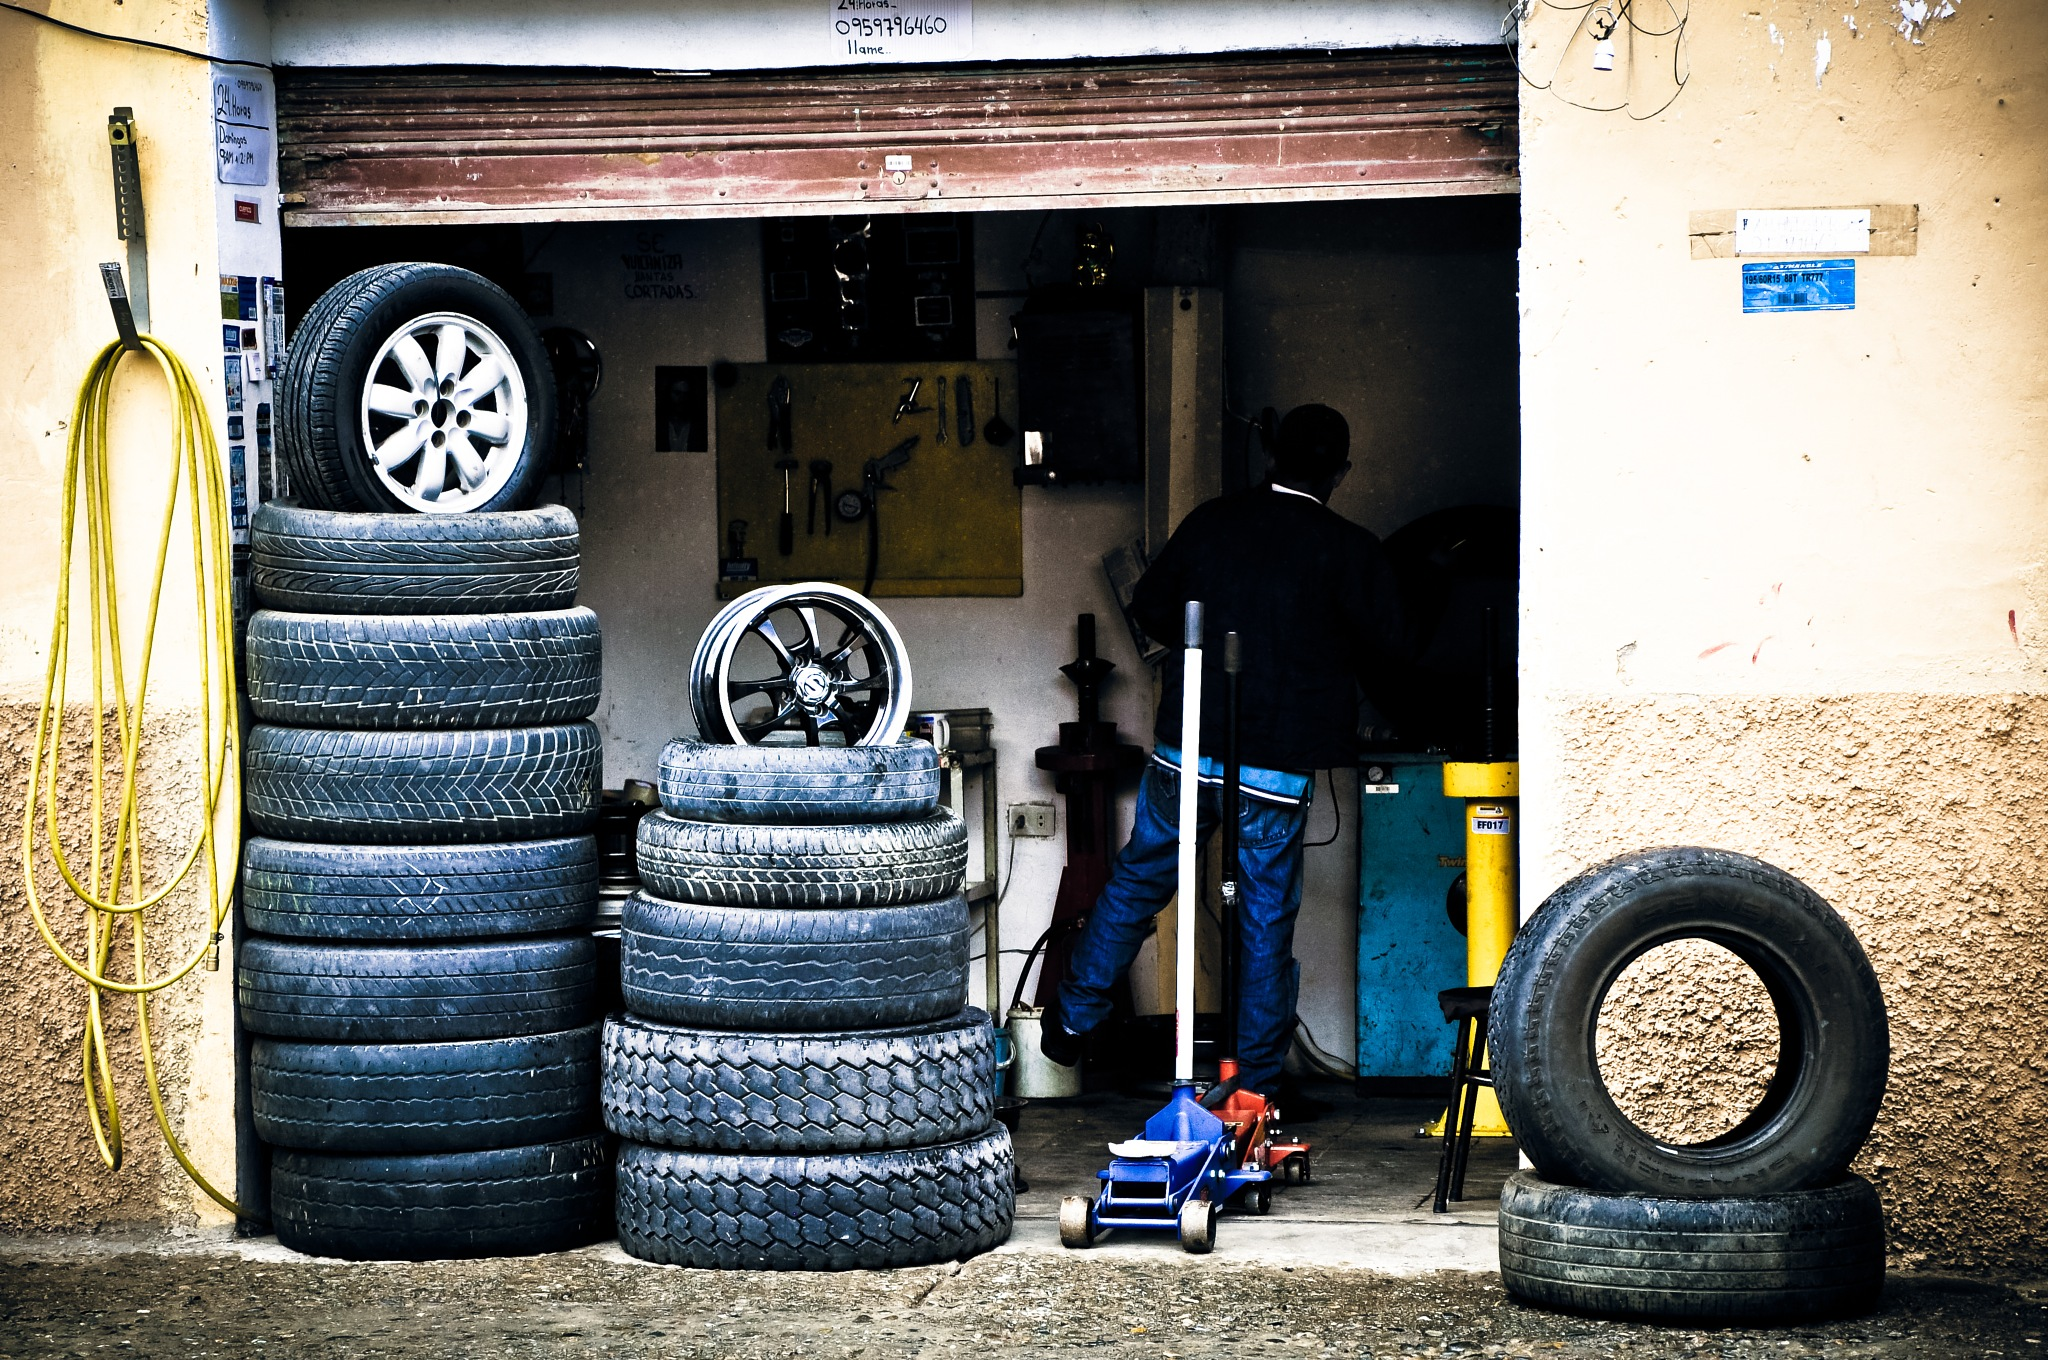 Tire Shop (Ecuador) by Jiri Bielicky